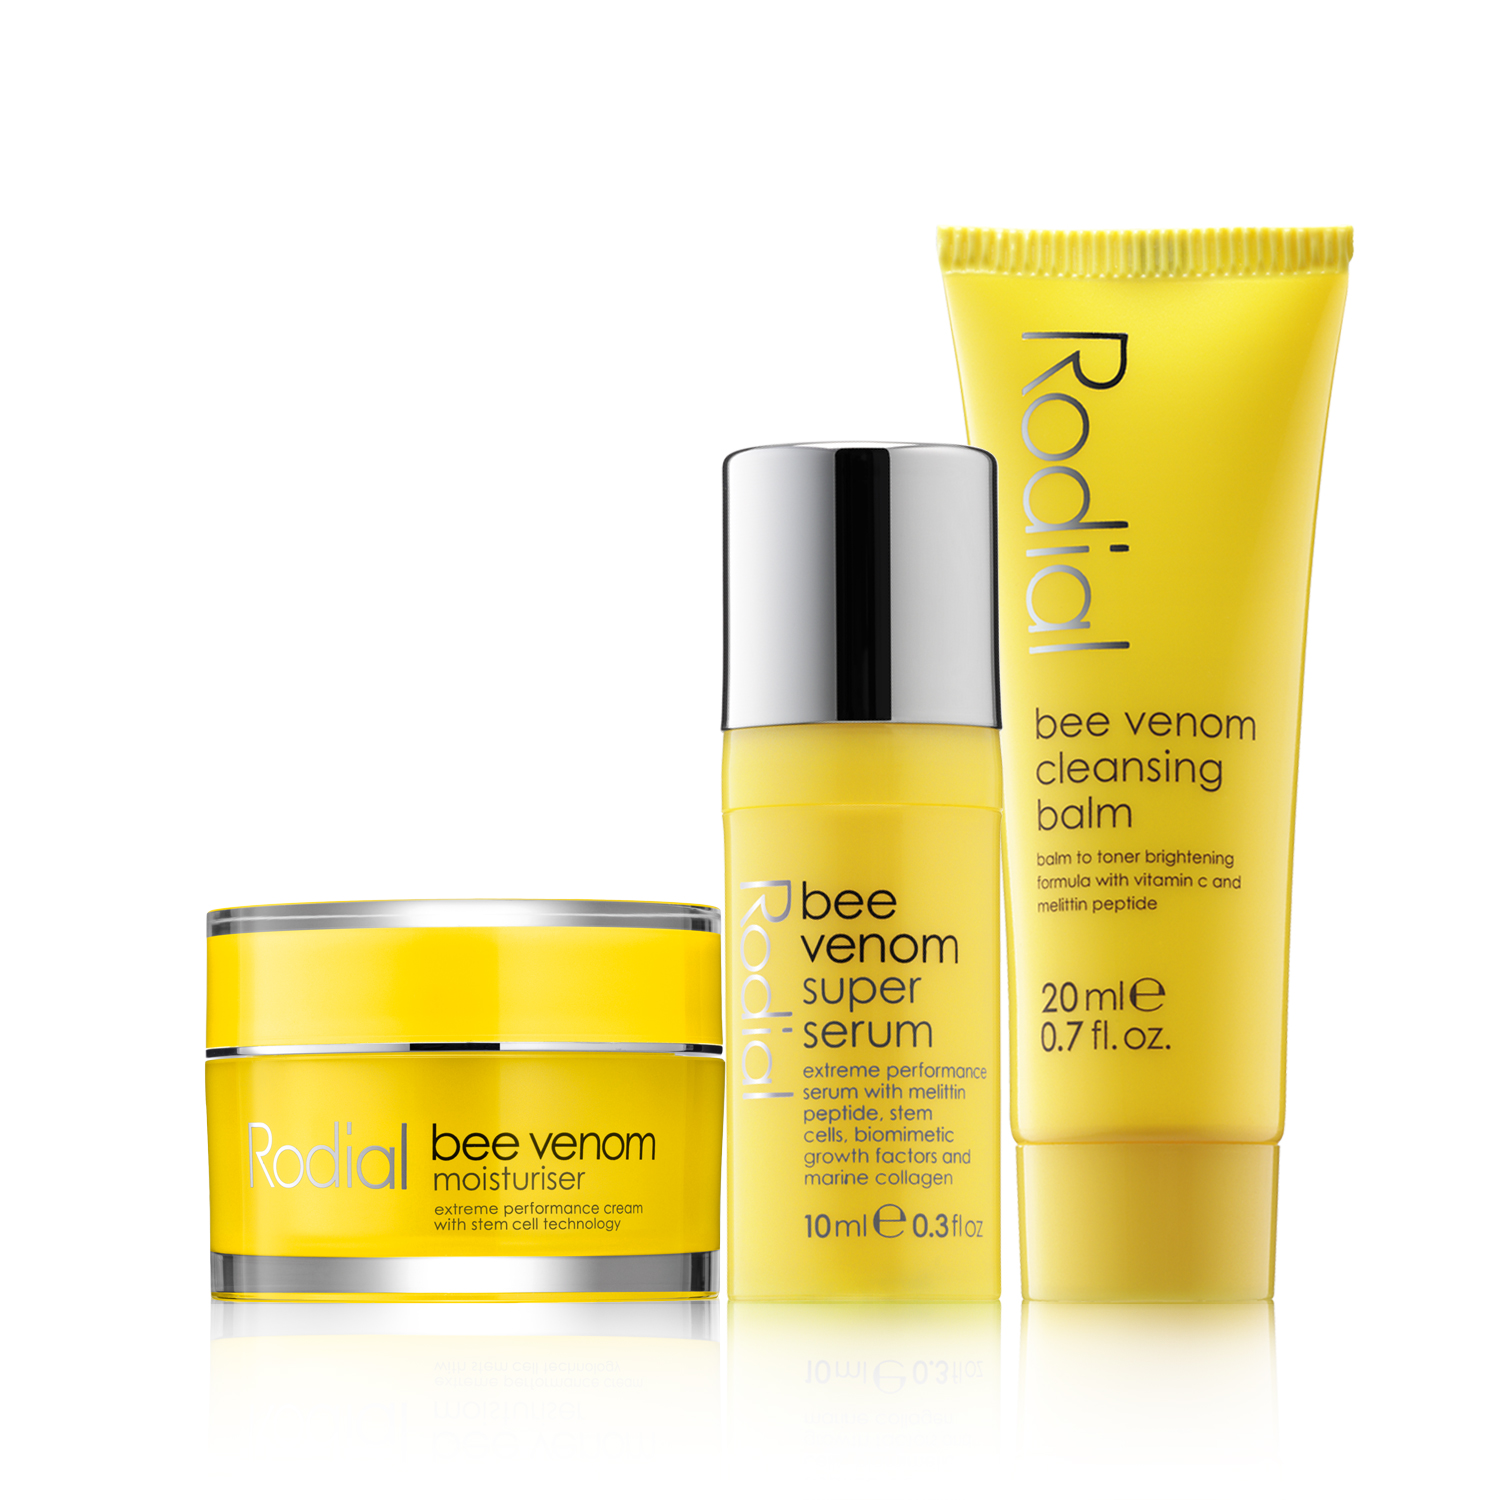 MY FIVE BEST BEE VENOM PRODUCTS: Royal Nectar still tops; Nature's Beauty is best new for Royal Nectar Rejuvenating Serum ($45) is the most recent product launch by Nelson Honey, the family-owned, New Zealand based, bee business that makes Royal Nectar Original Face Mask with Bee Venom ($68) and supplies the bee venom for the Heaven Bee Venom Mask (see my review here).